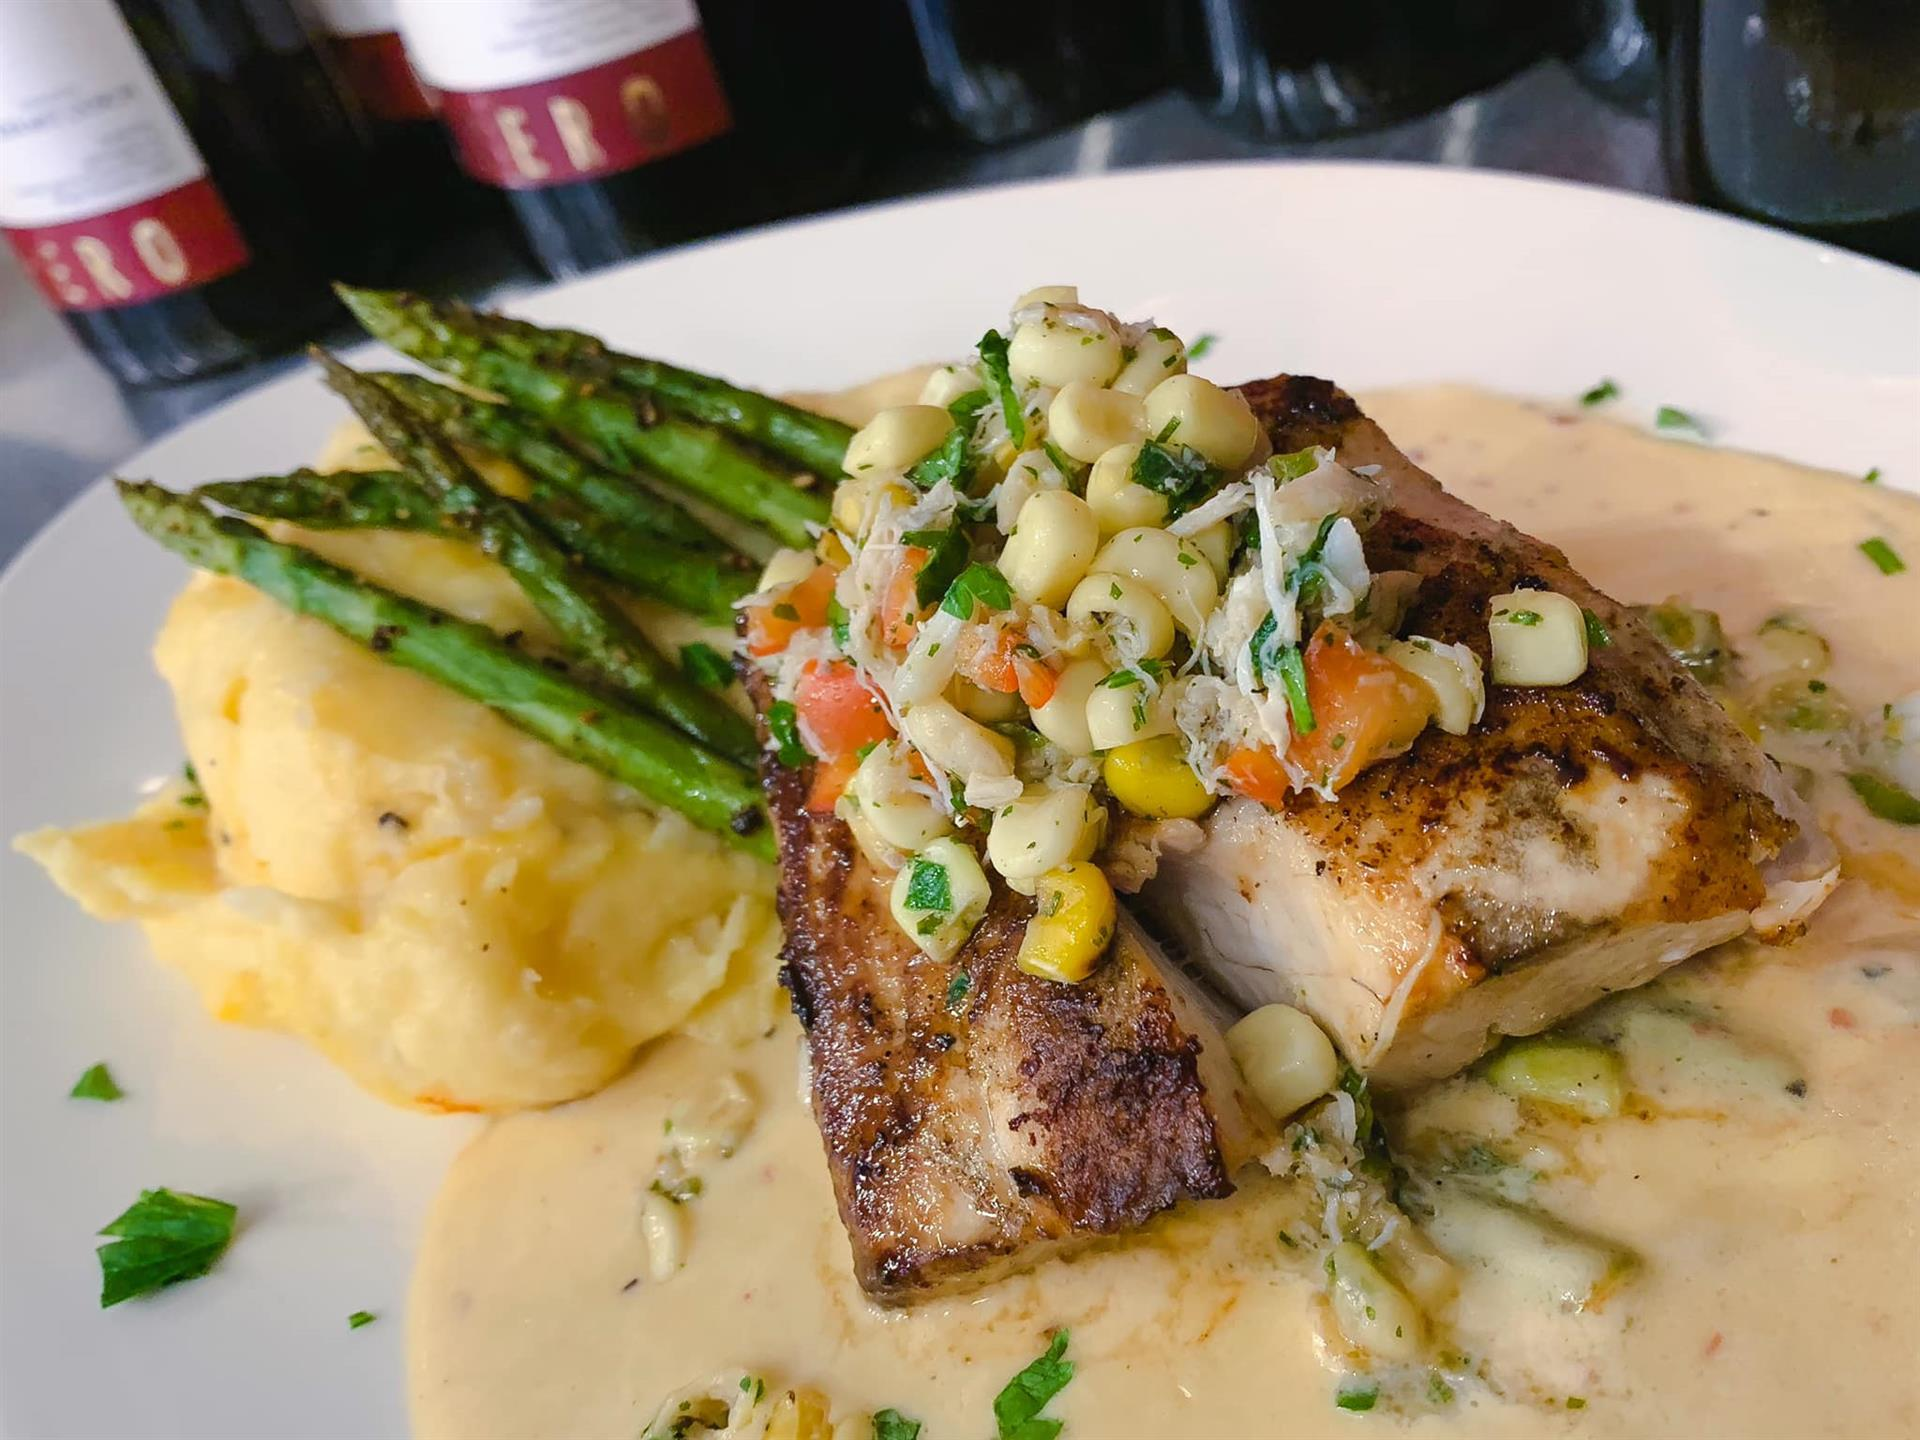 Itavie's Grilled Mahi-Mahi dinner special, an Italian restaurant in Spotsylvania and Fredericksburg, Virginia